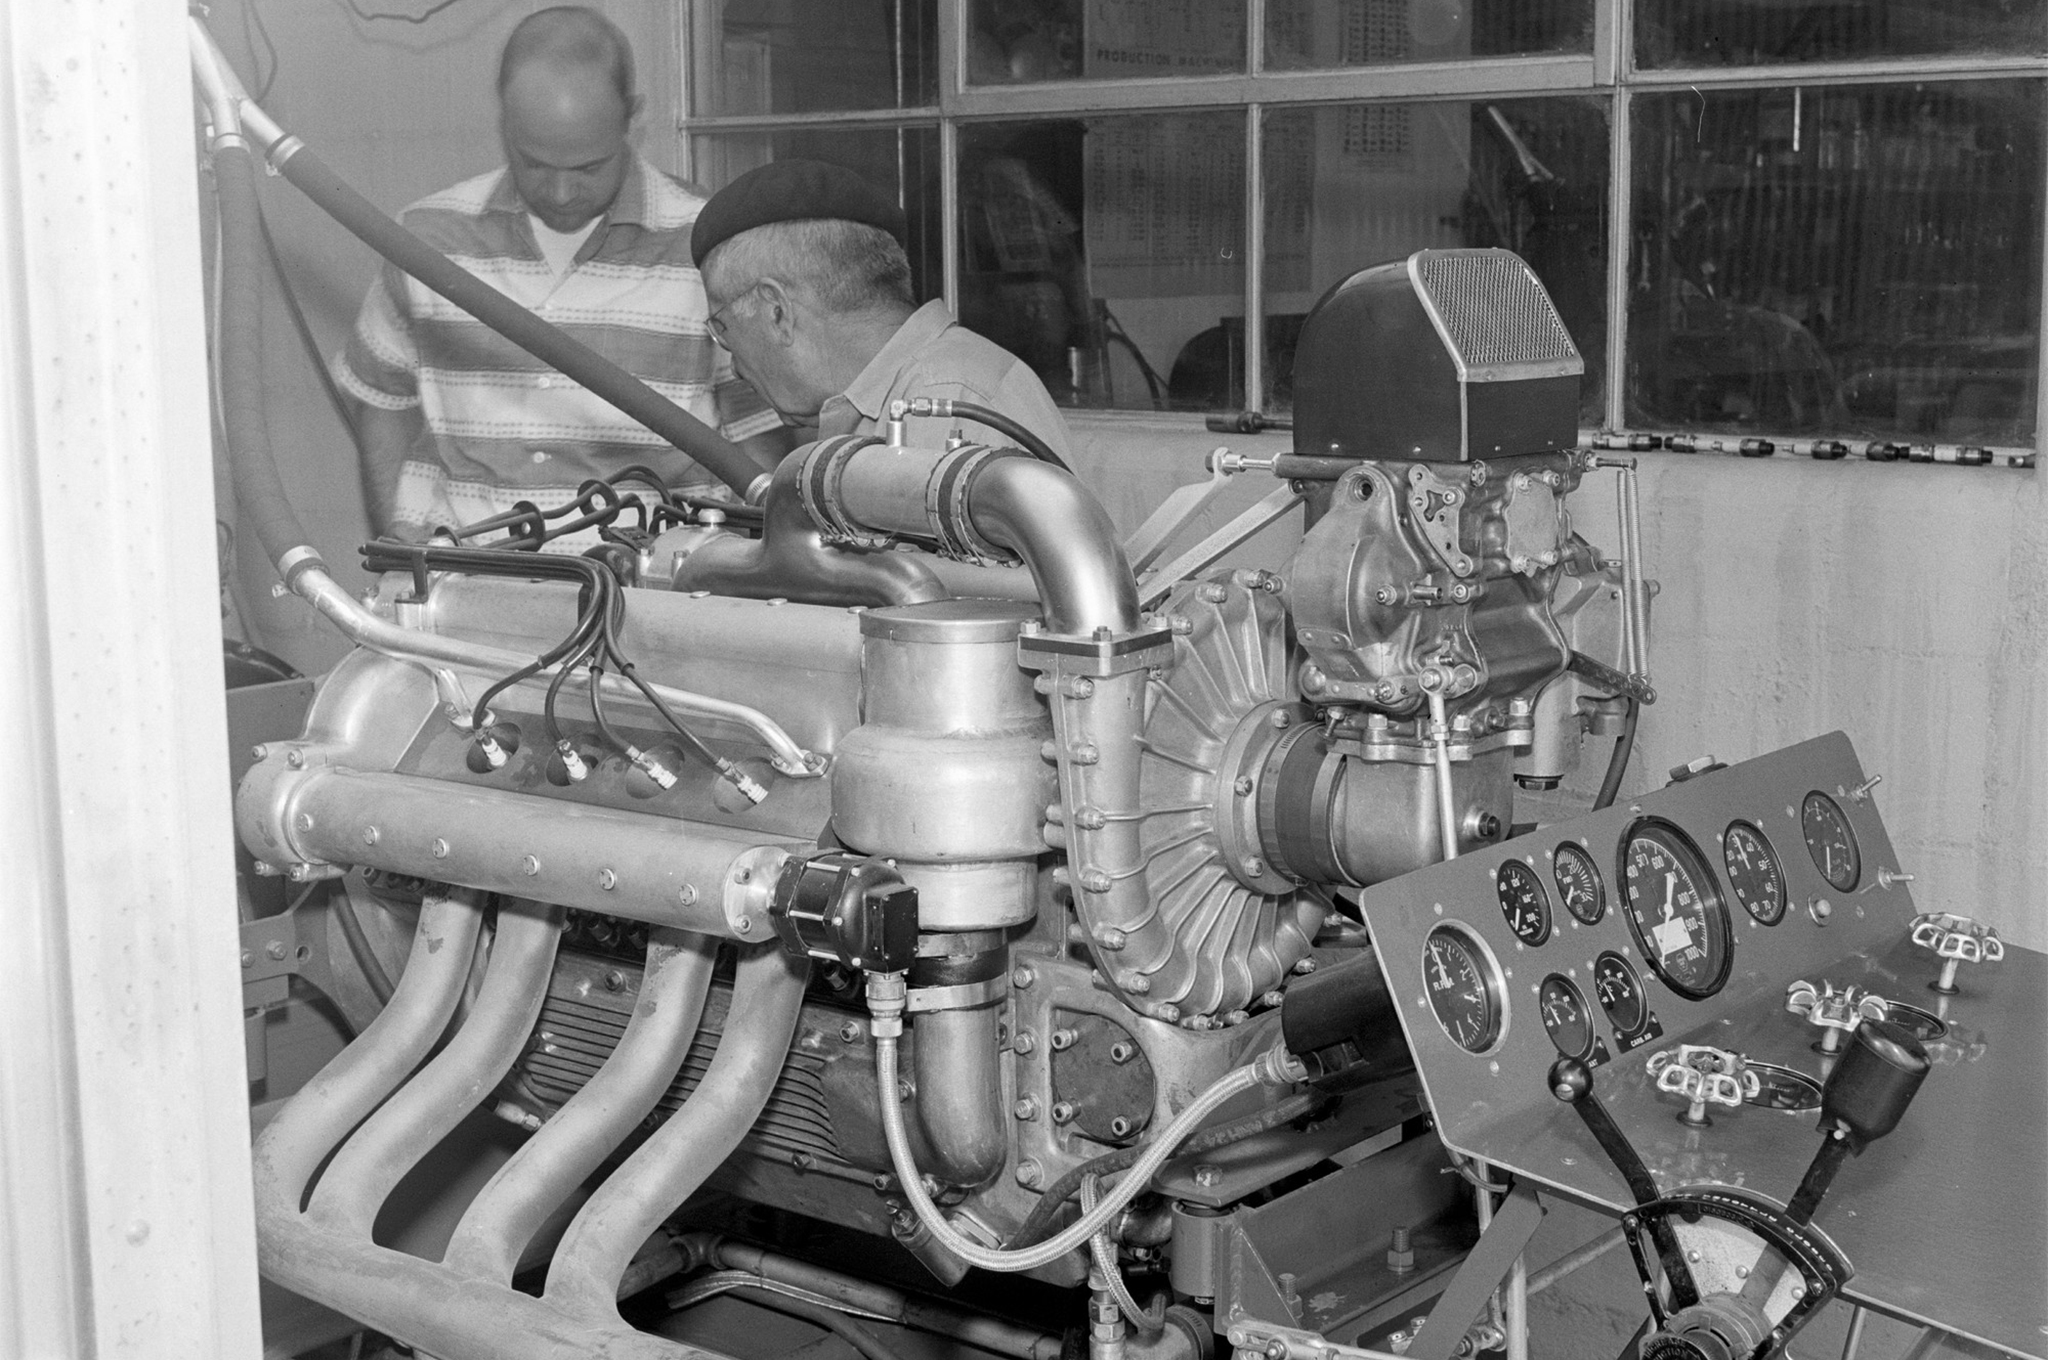 Here's an outtake of a shot from the same angle that HRM published (June '55). We like this one better because Technical Editor Ray Brock (left) and mechanic Jean Marcenac are behind the dyno, instead of obscuring its cool control panel. More than 600 hp was generated by the 183ci, Holley-carbed, supercharged Novi V-8 that Troy Ruttman ran at Indy.